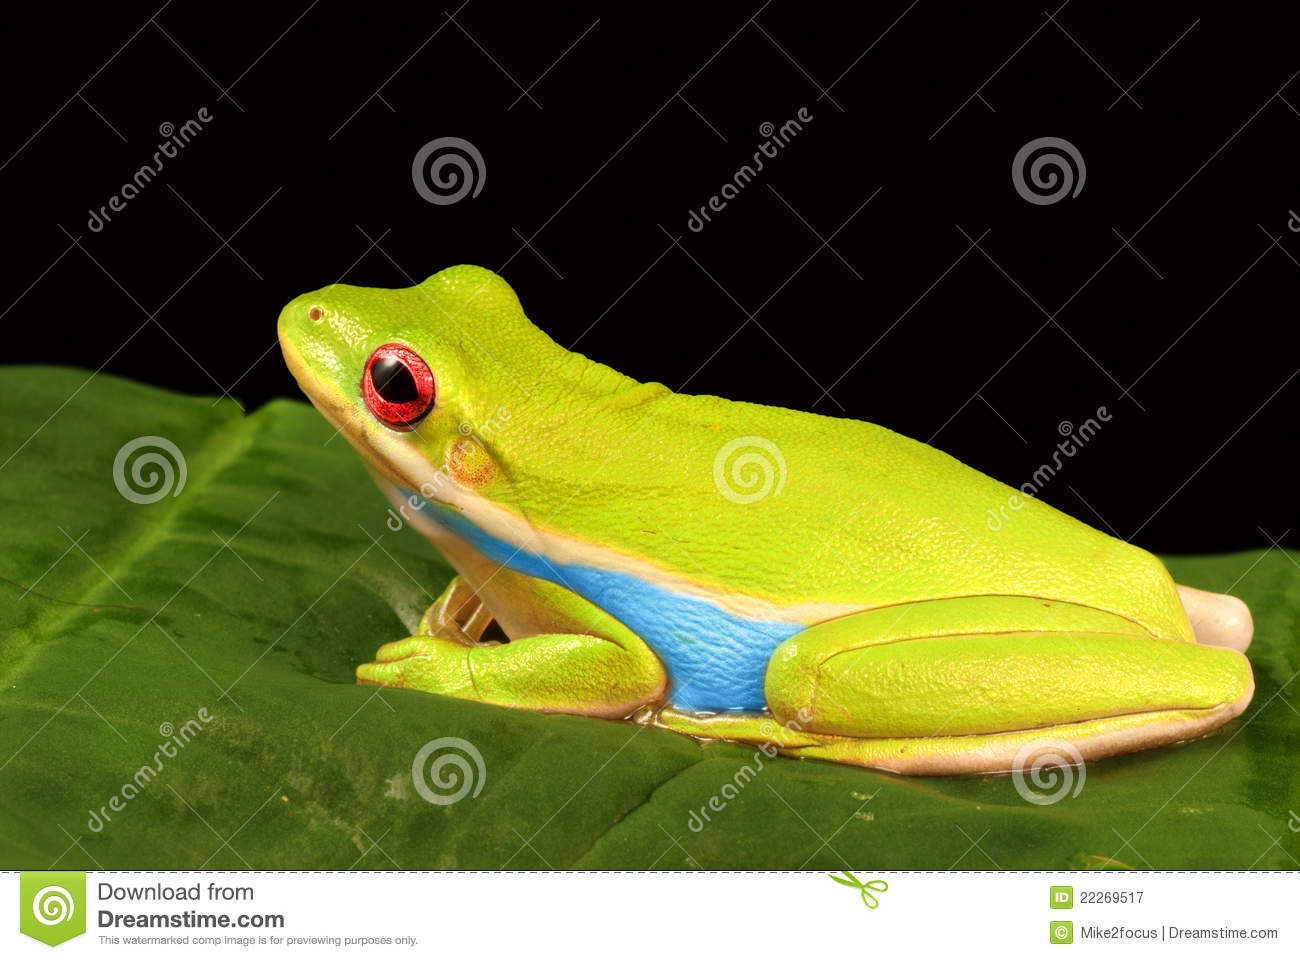 Royalty Free Stock Photography: Colorful tree frog against black ...